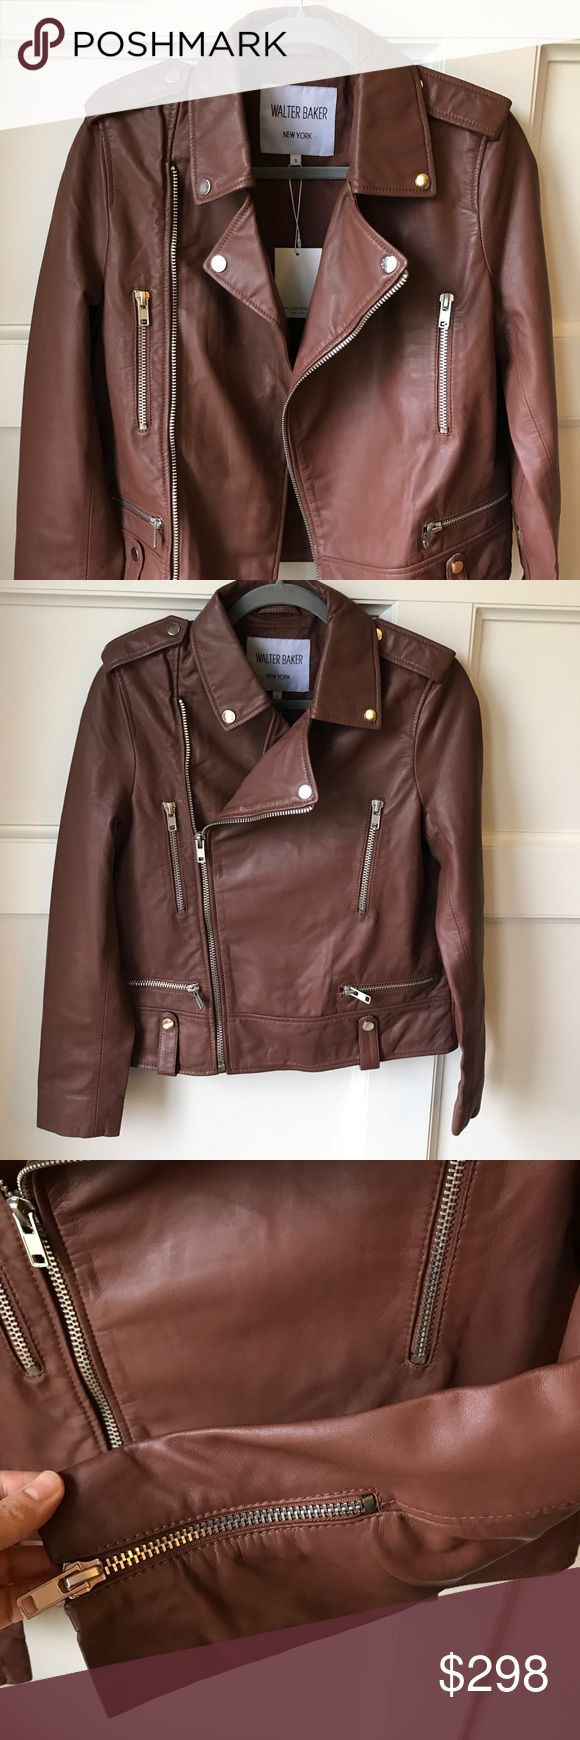 Walter Baker leather jacket Gorgeous classic leather jacket by Walter Baker New York. The clay color is beautiful and the leather is very soft. It's a little too small for me or I would totally keep it!! Walter Baker Jackets & Coats